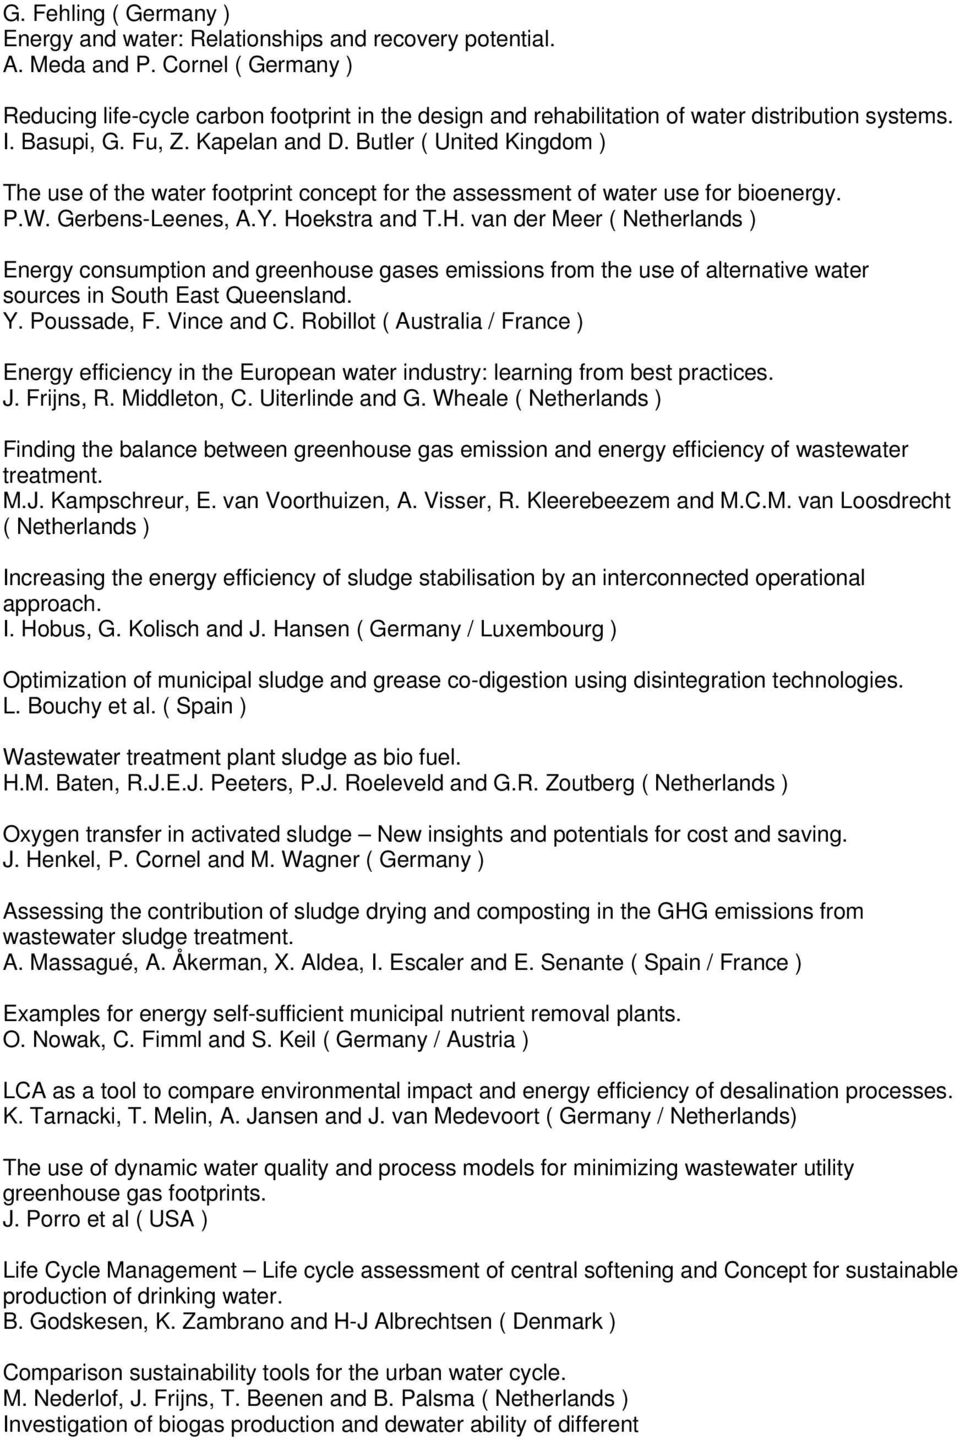 Butler ( United Kingdom ) The use of the water footprint concept for the assessment of water use for bioenergy. P.W. Gerbens-Leenes, A.Y. Ho